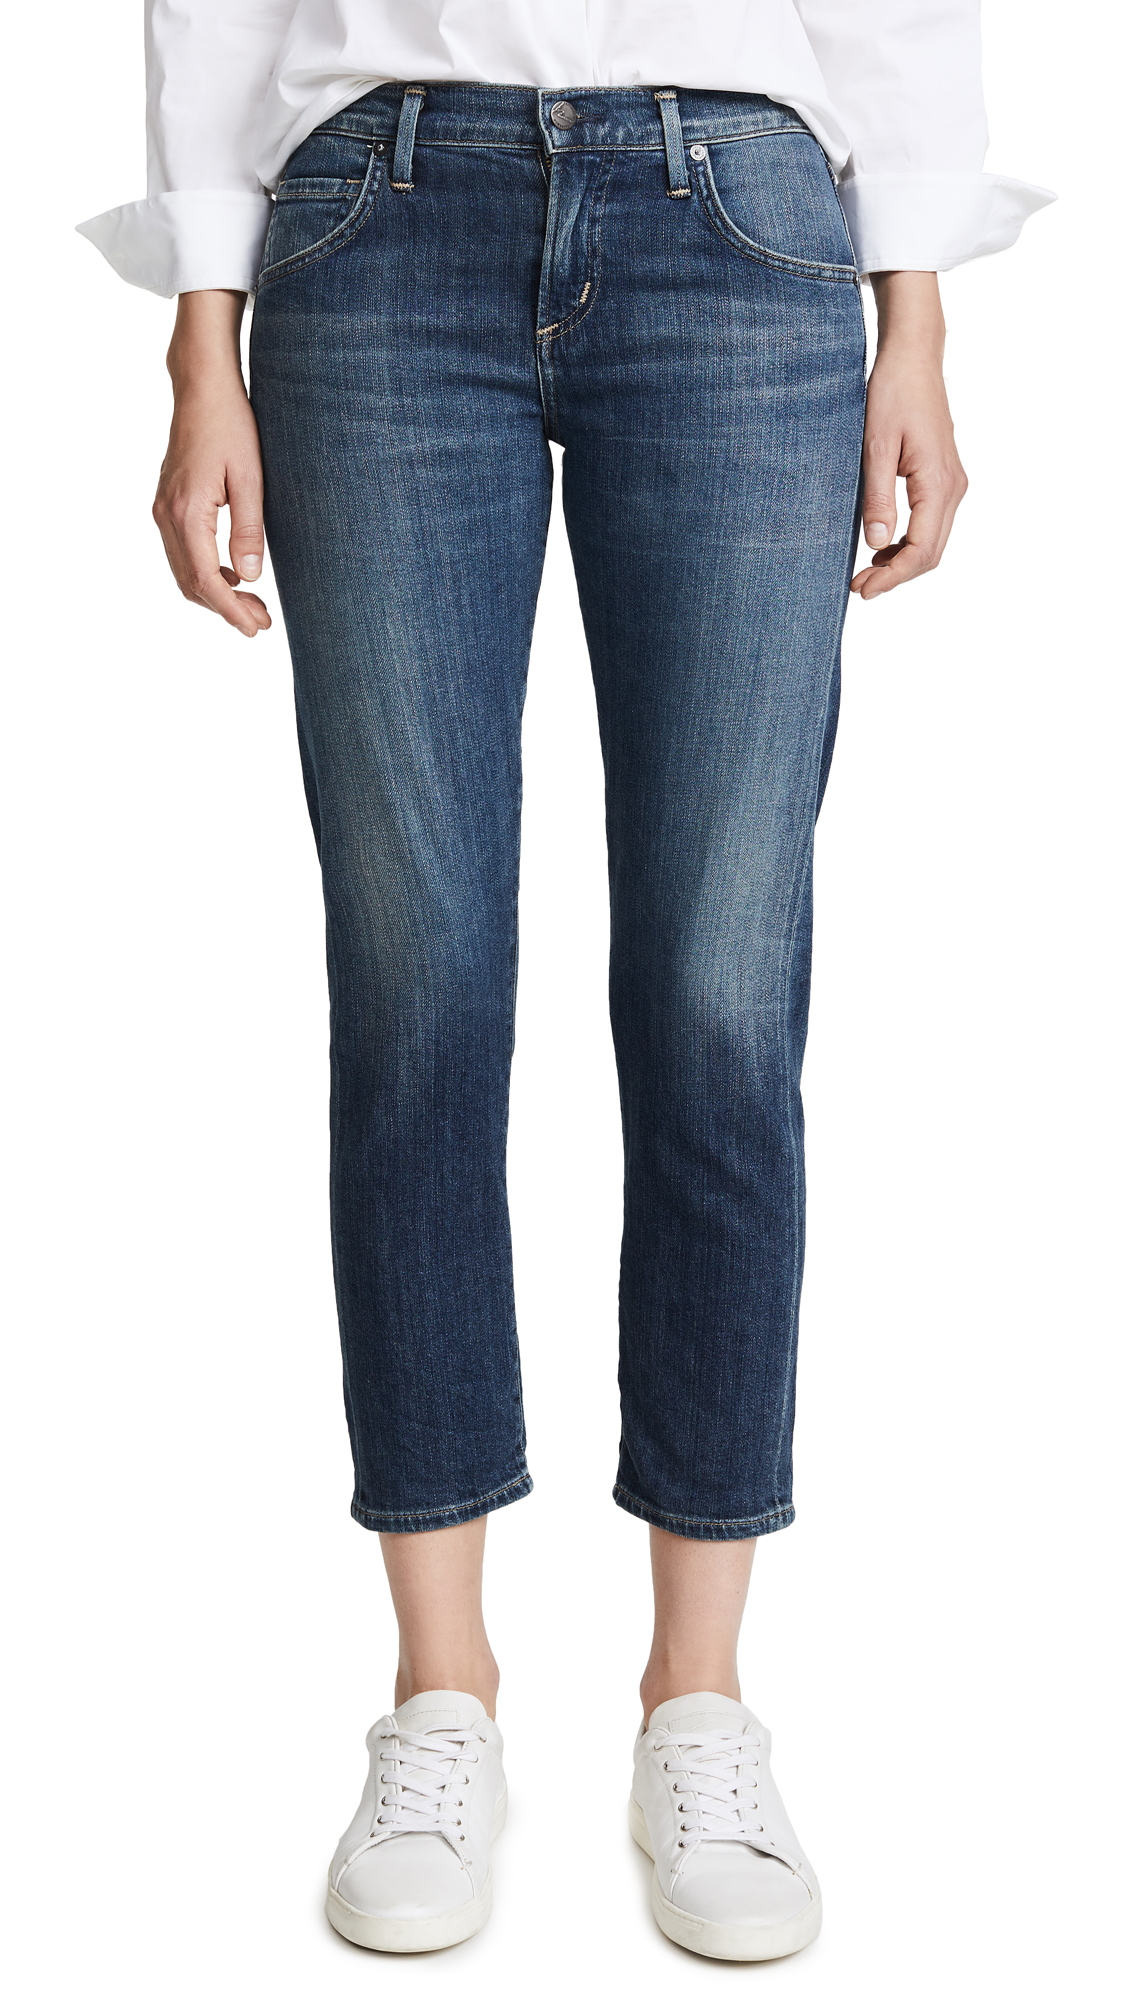 Citizens of Humanity Emerson Slim Boyfriend Ankle Jeans - El Dorado